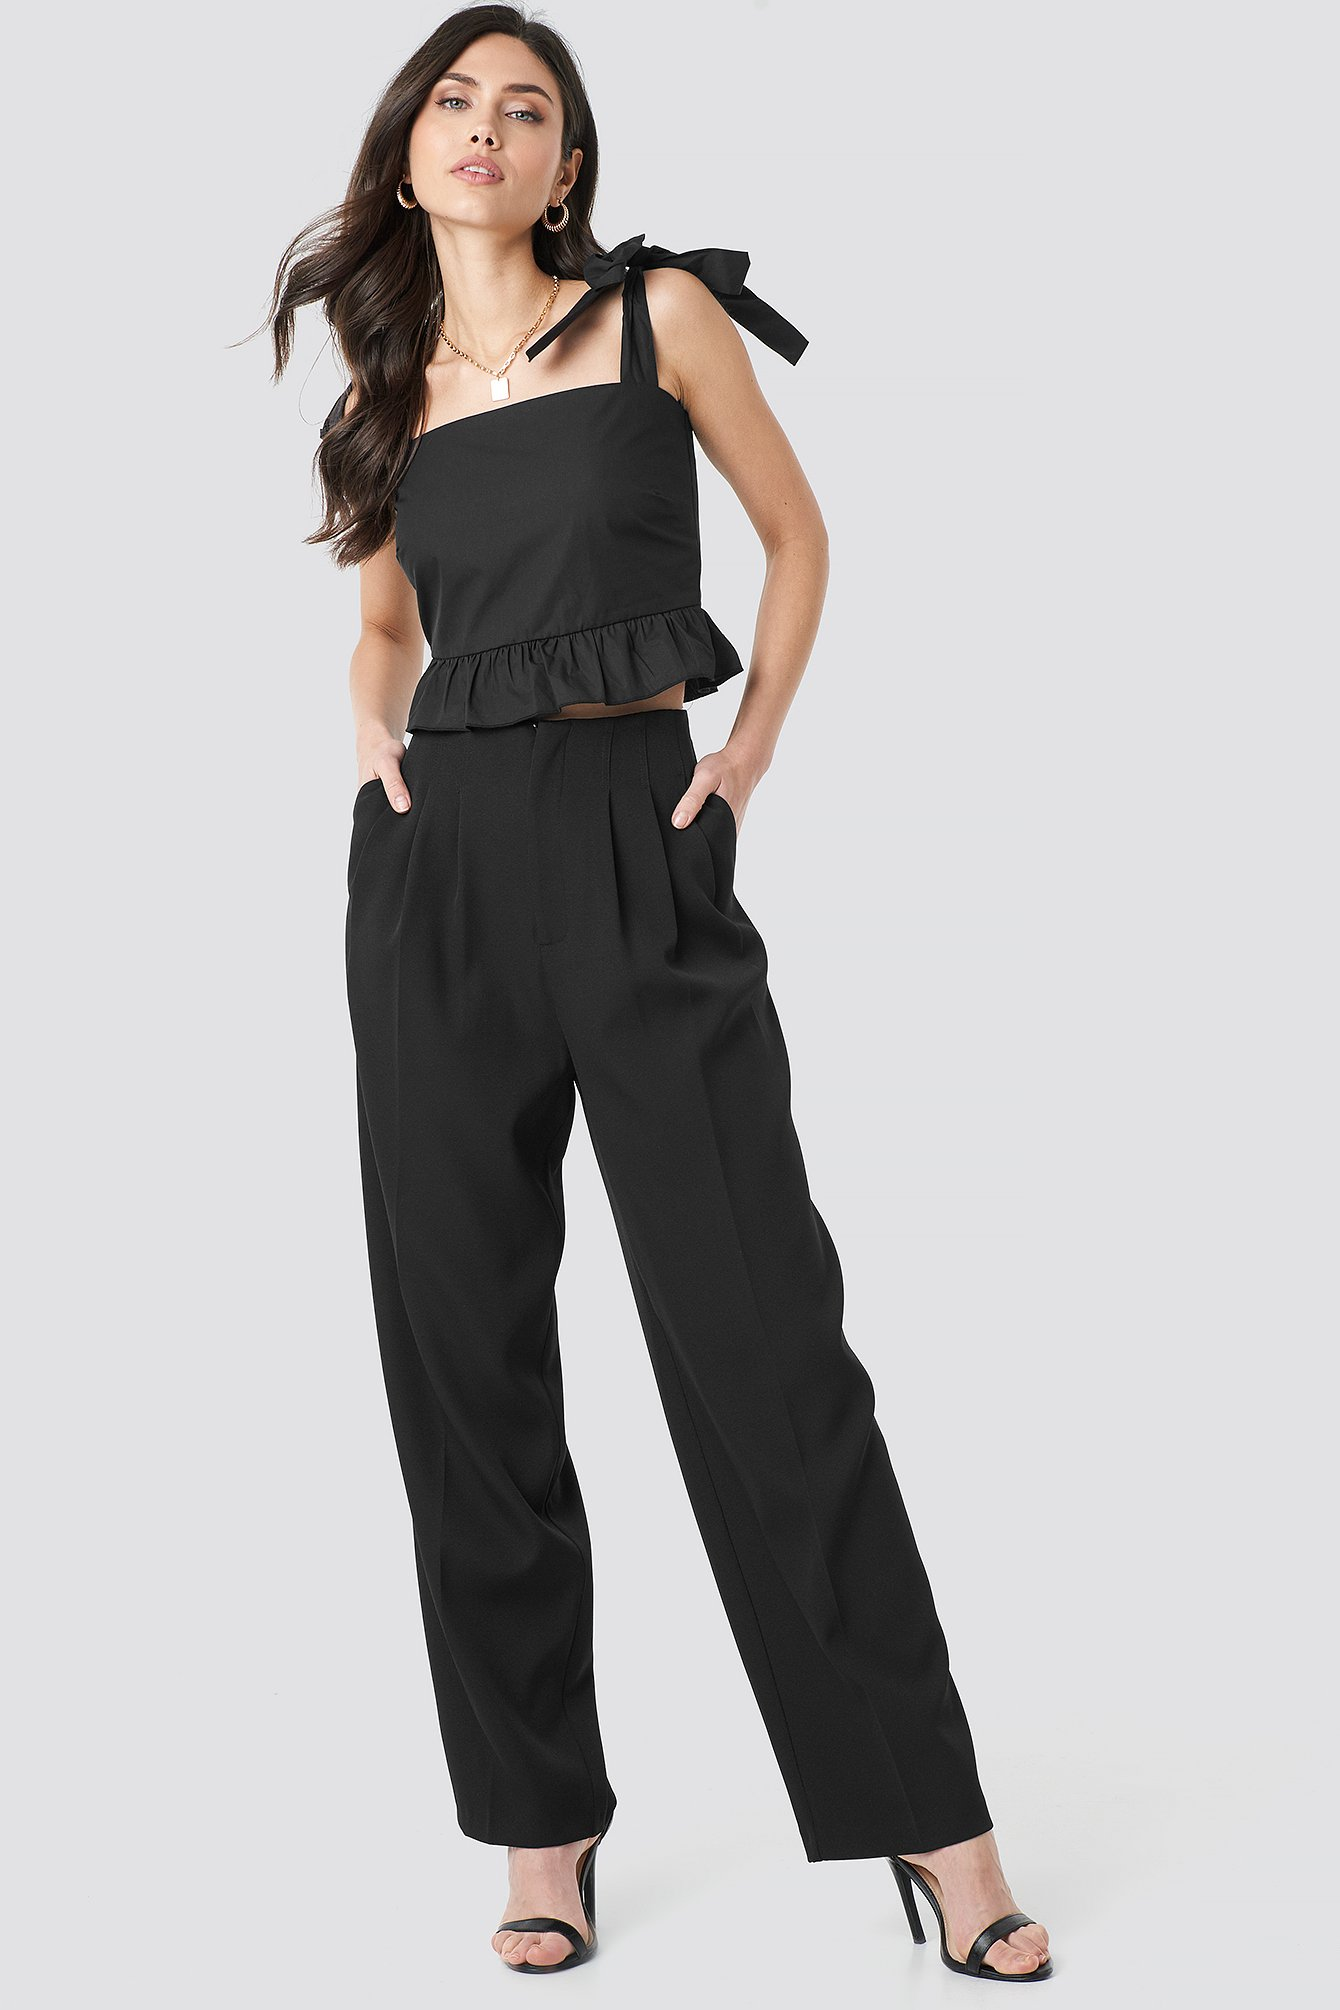 beyyoglu -  Pleated Palazzo Pants - Black